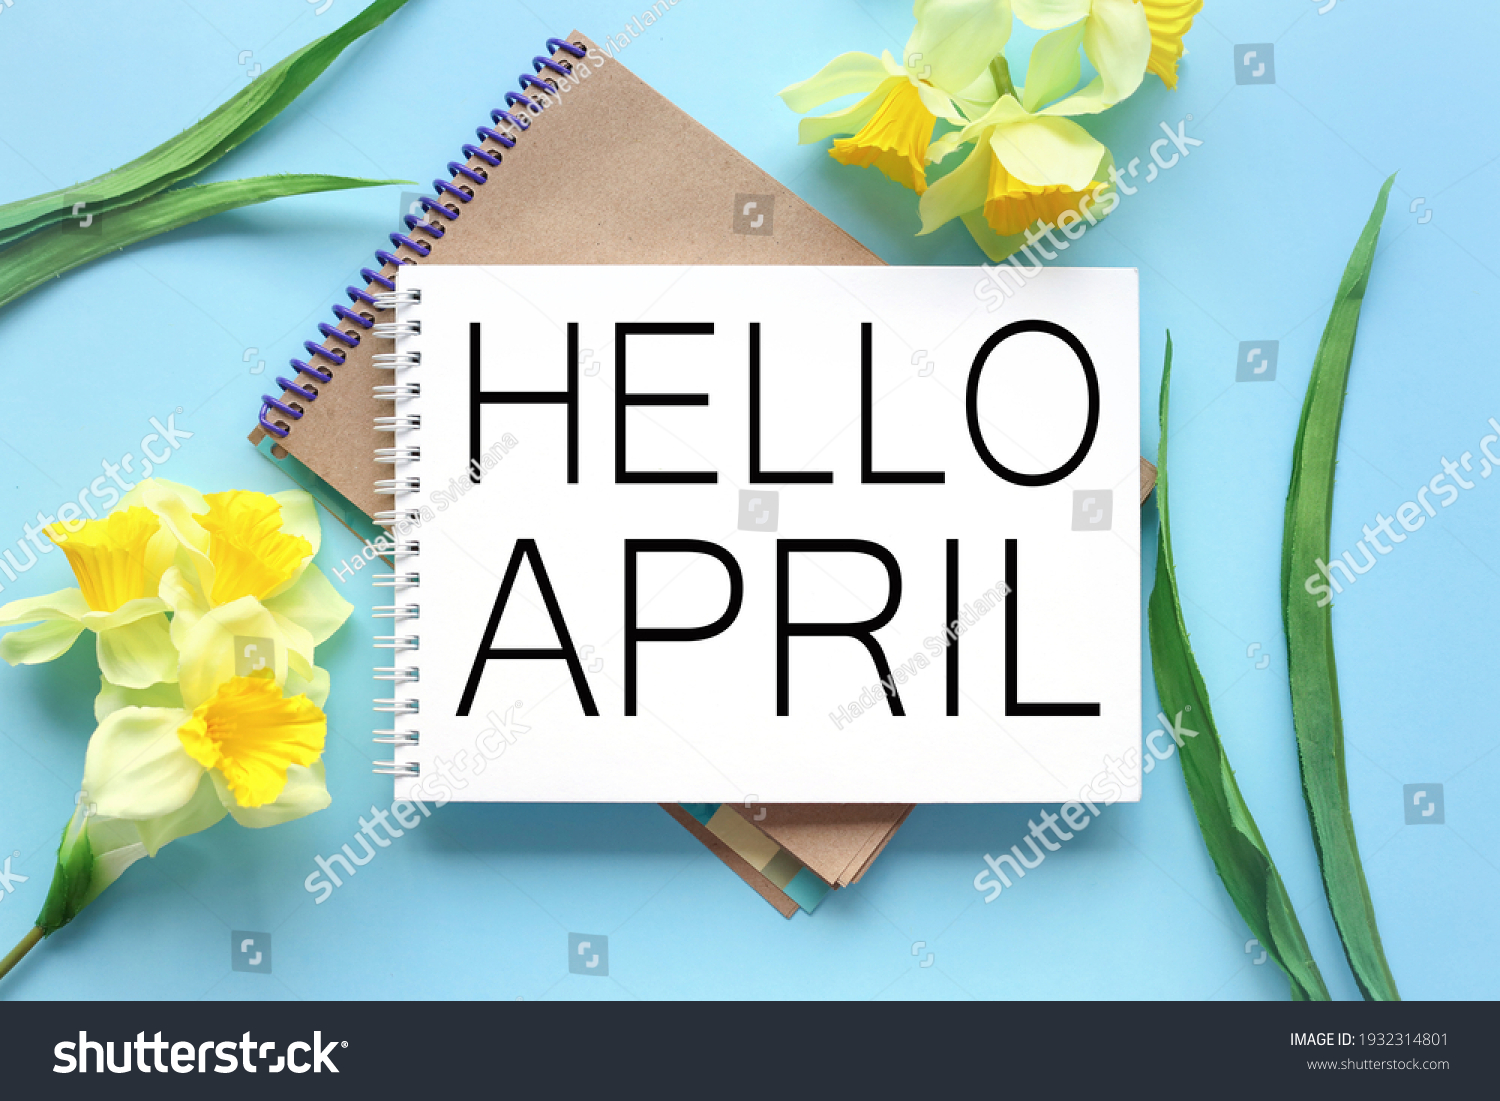 Hello April . text on white notepad paper on blue background. near notepad with yellow flowers and green leaves #1932314801